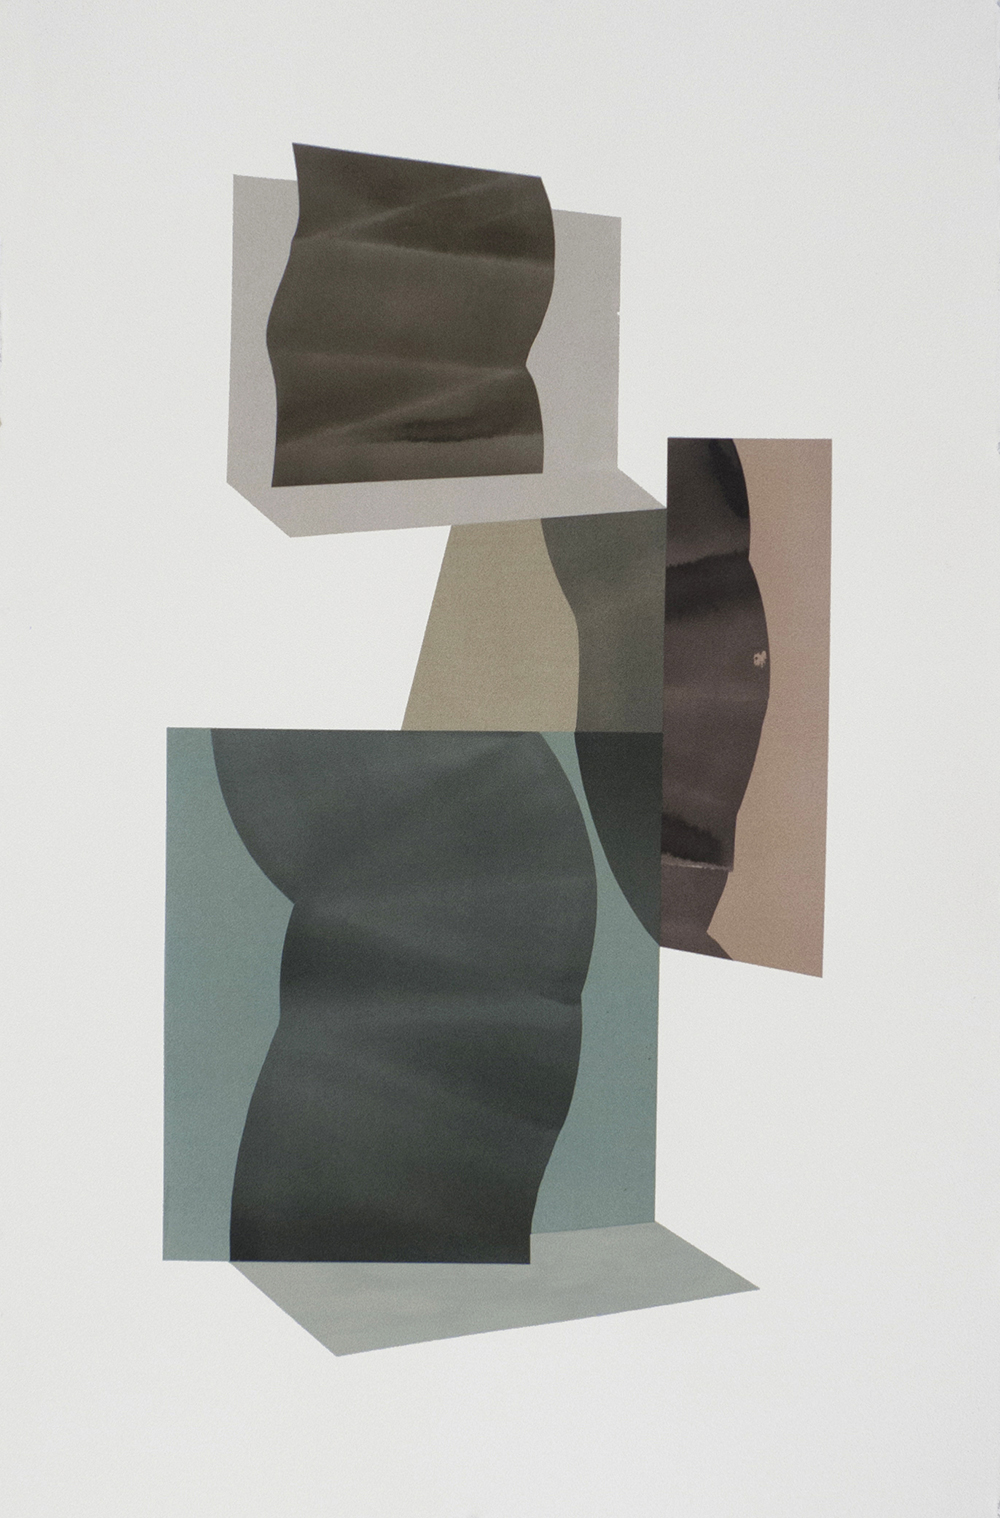 """Simone Rochon, Ombres souples no. 1 , 2017, collage, acrylic ink on Waterford paper,40"""" x 26"""" (102 x 66 cm)."""